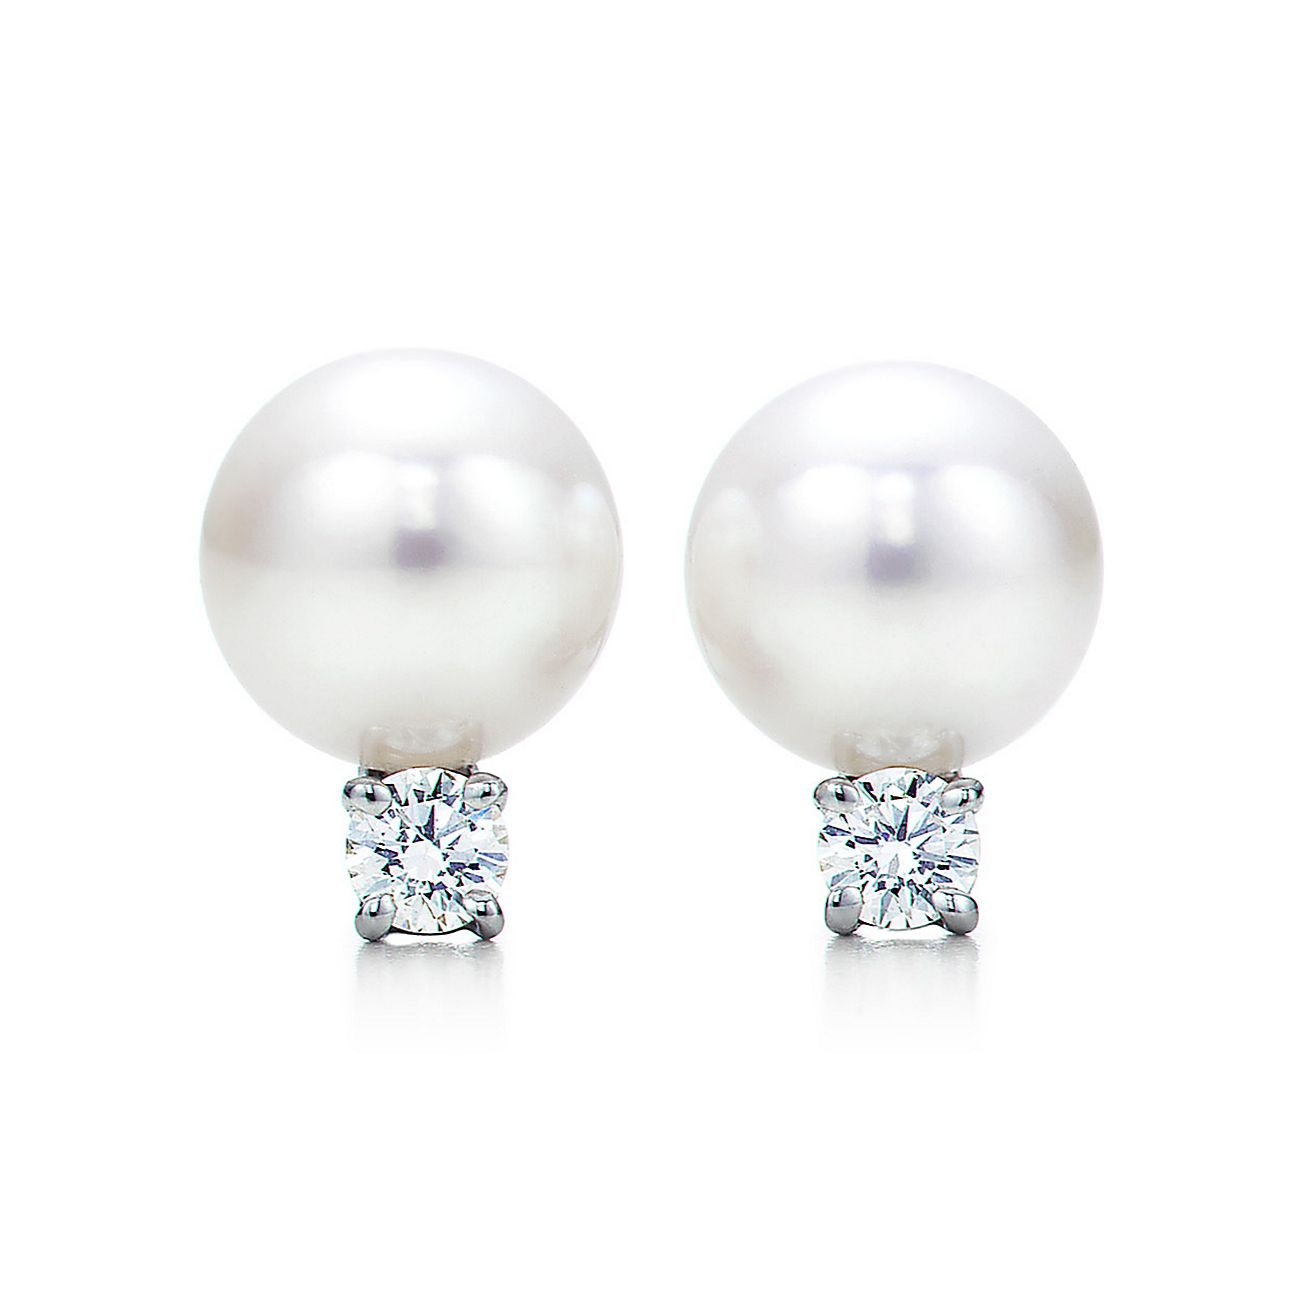 Tiffany Signature Pearls Earrings In 18k White Gold With And Diamonds Co